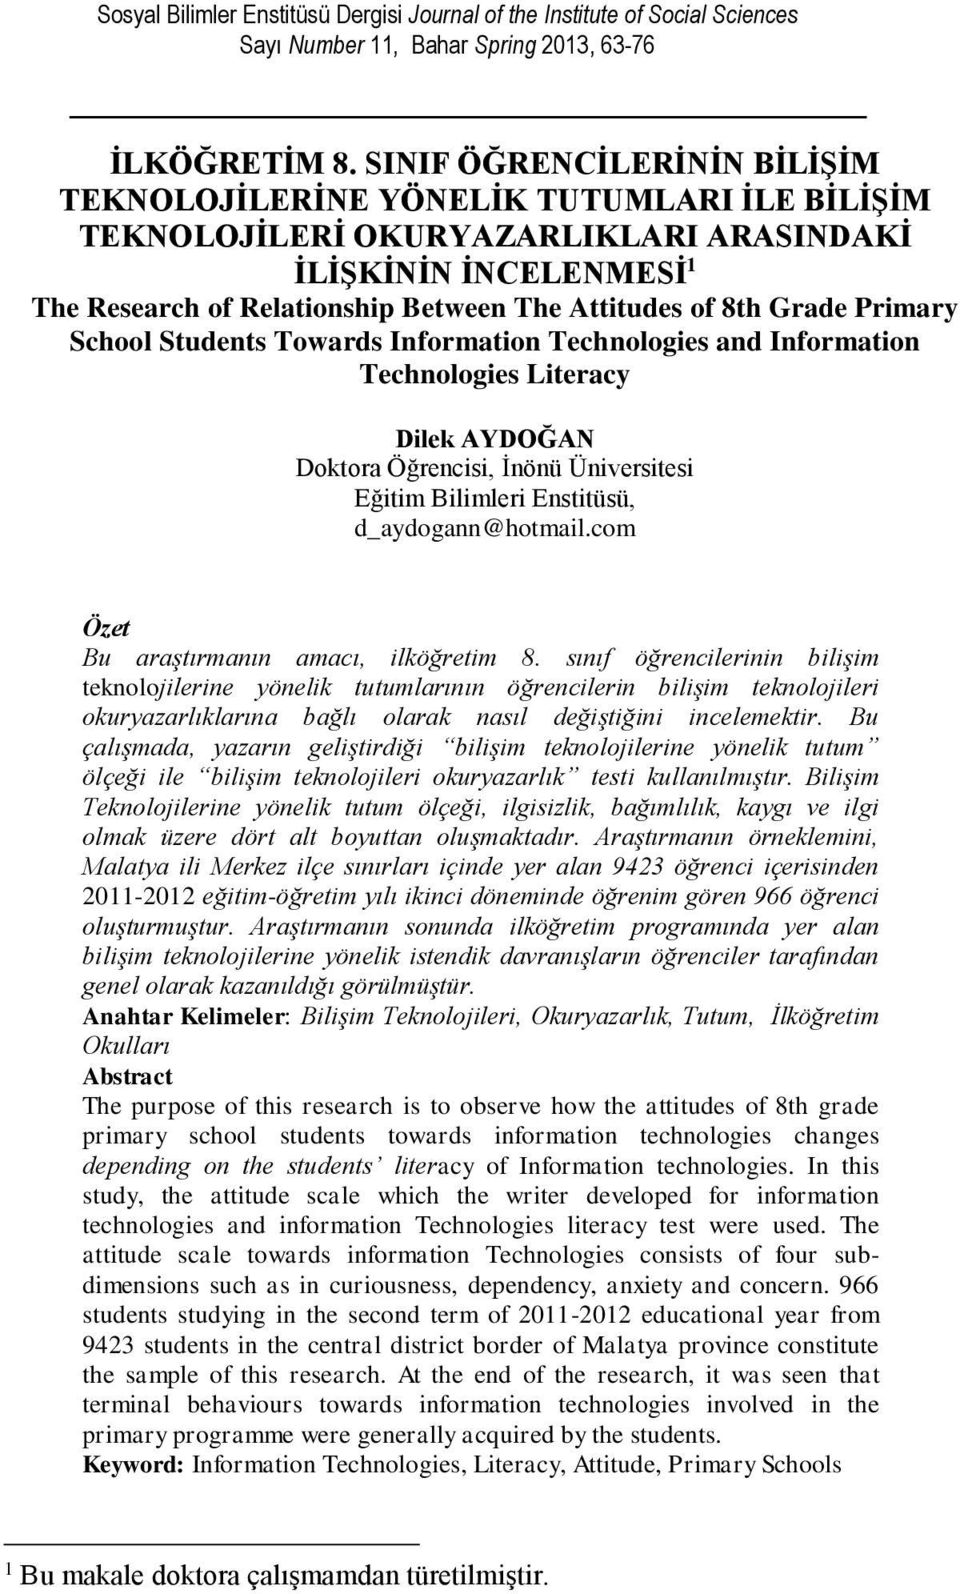 Grade Primary School Students Towards Information Technologies and Information Technologies Literacy Dilek AYDOĞAN Doktora Öğrencisi, İnönü Üniversitesi Eğitim Bilimleri Enstitüsü, d_aydogann@hotmail.